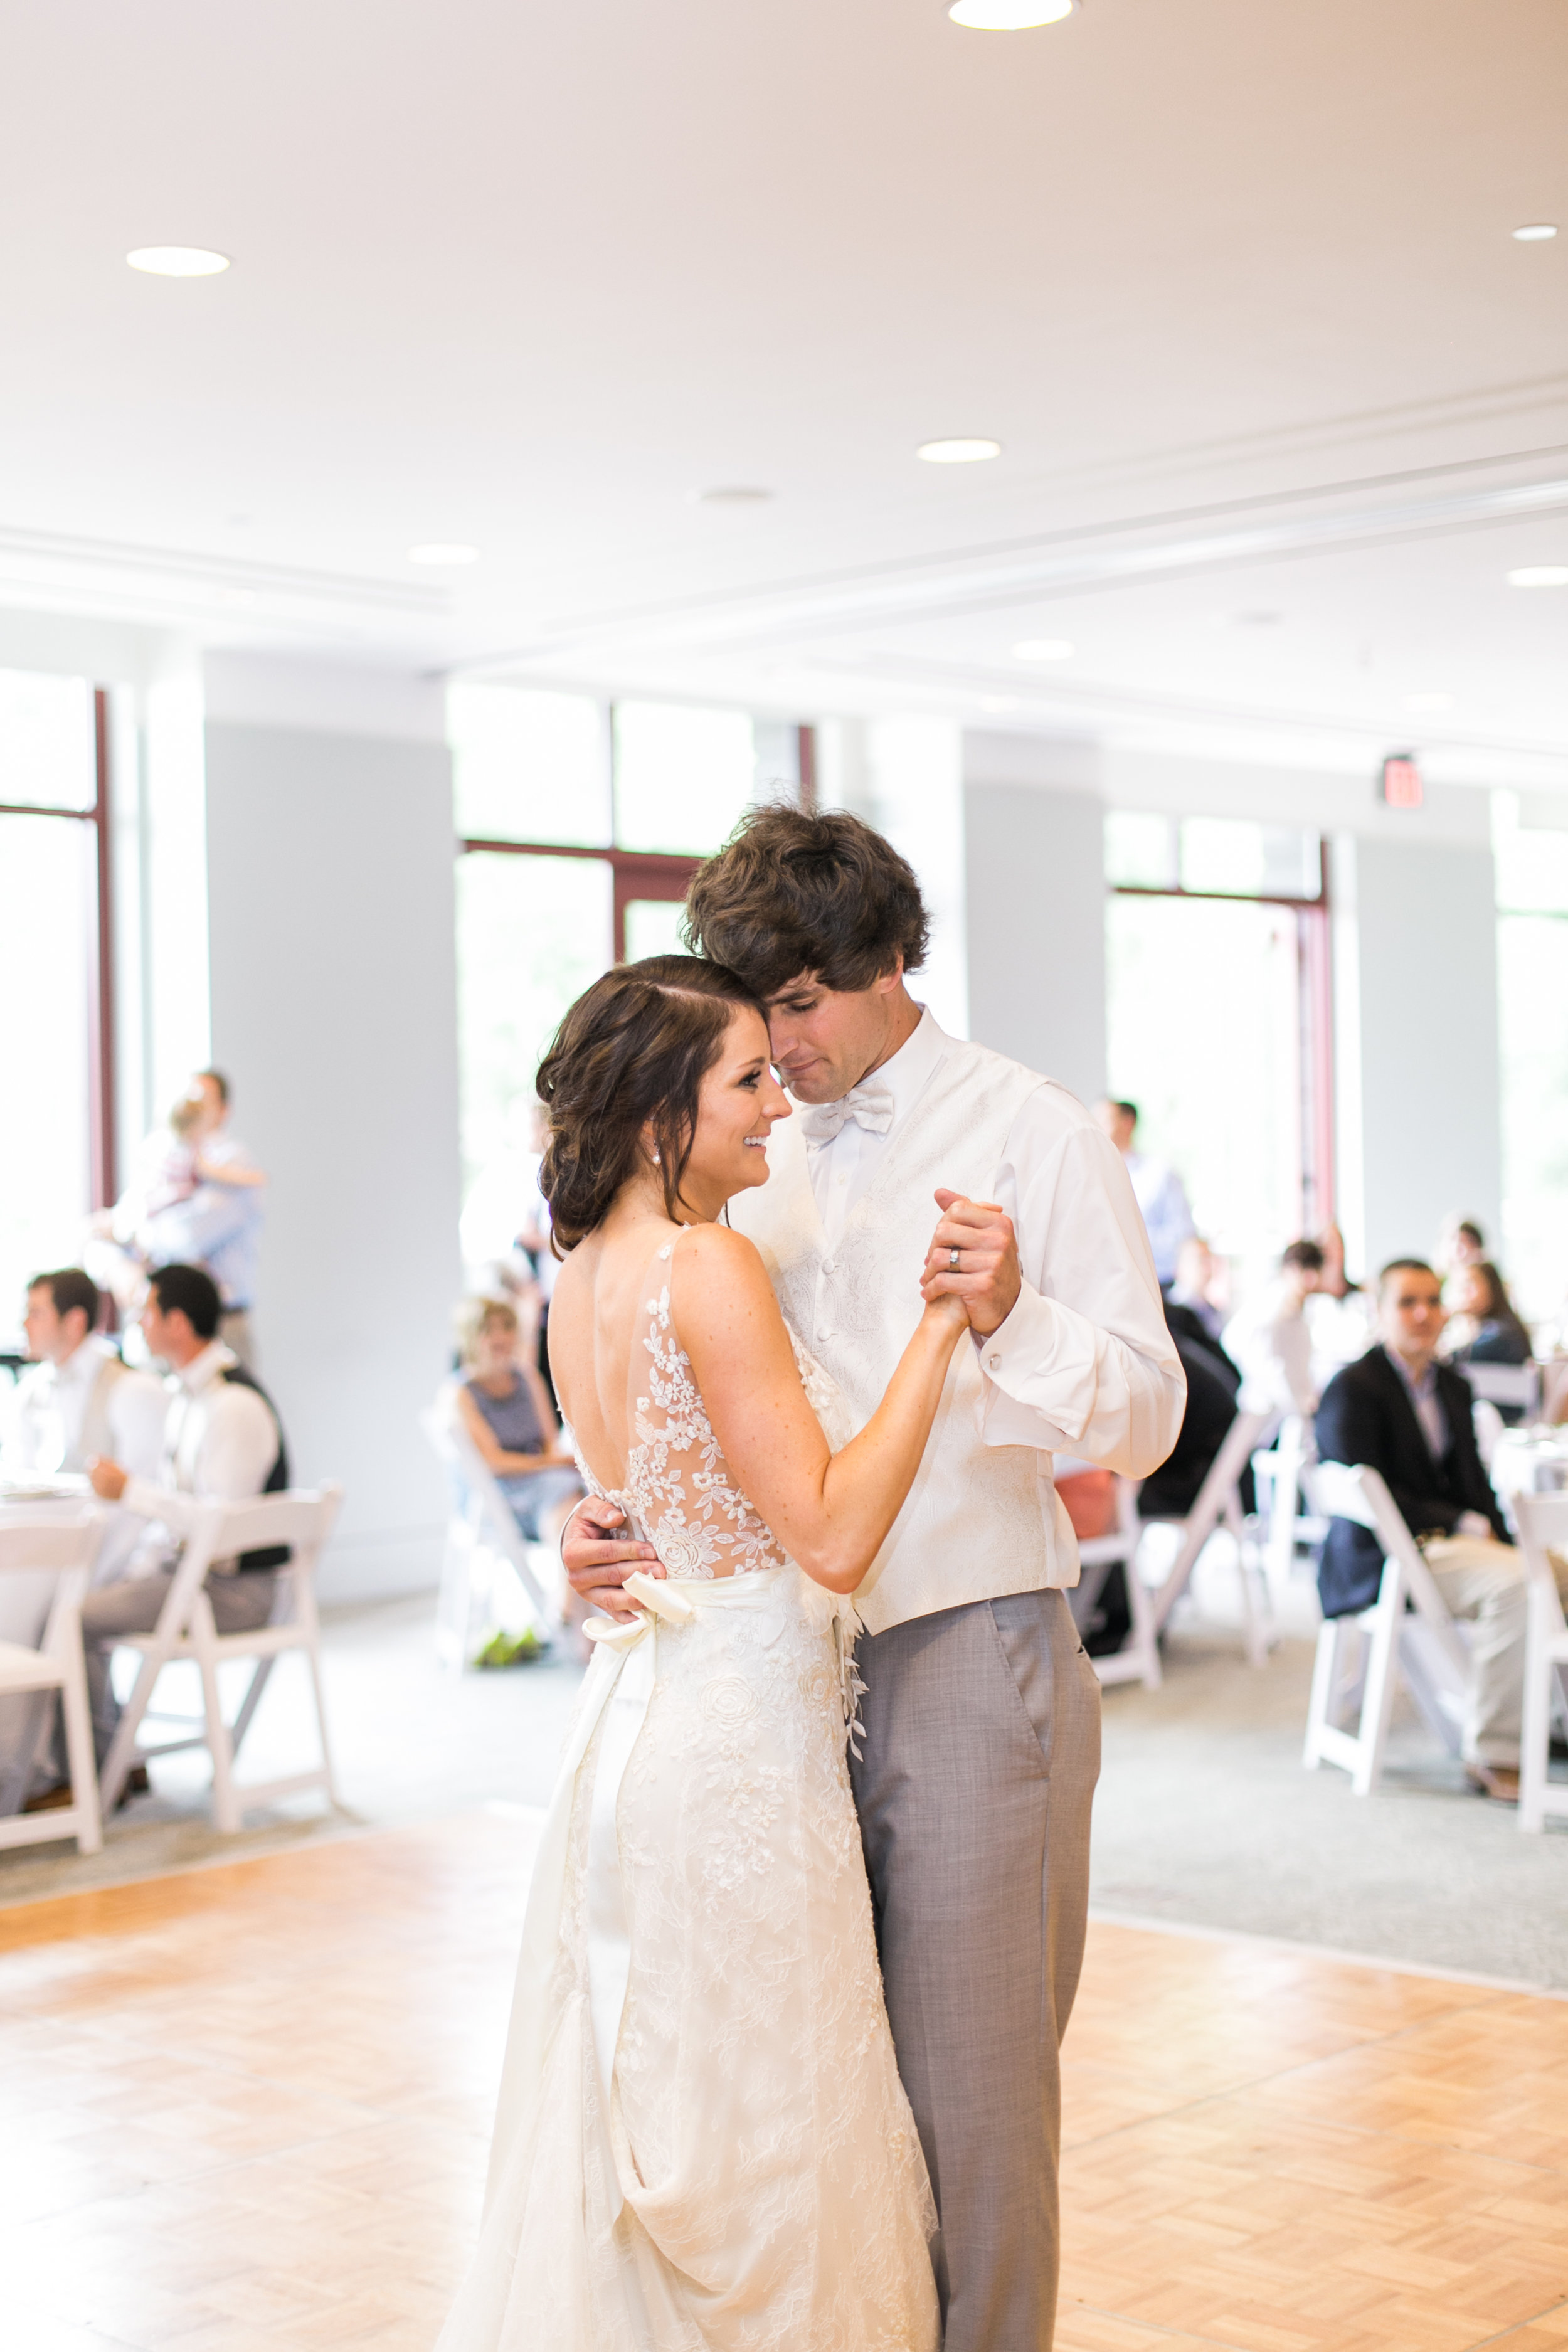 Leslie + Tyler | Liancarlo 6815 gown and Sassi Holford sash both from Little White Dress Bridal Shop in Denver | Cassidy Brooke Photography